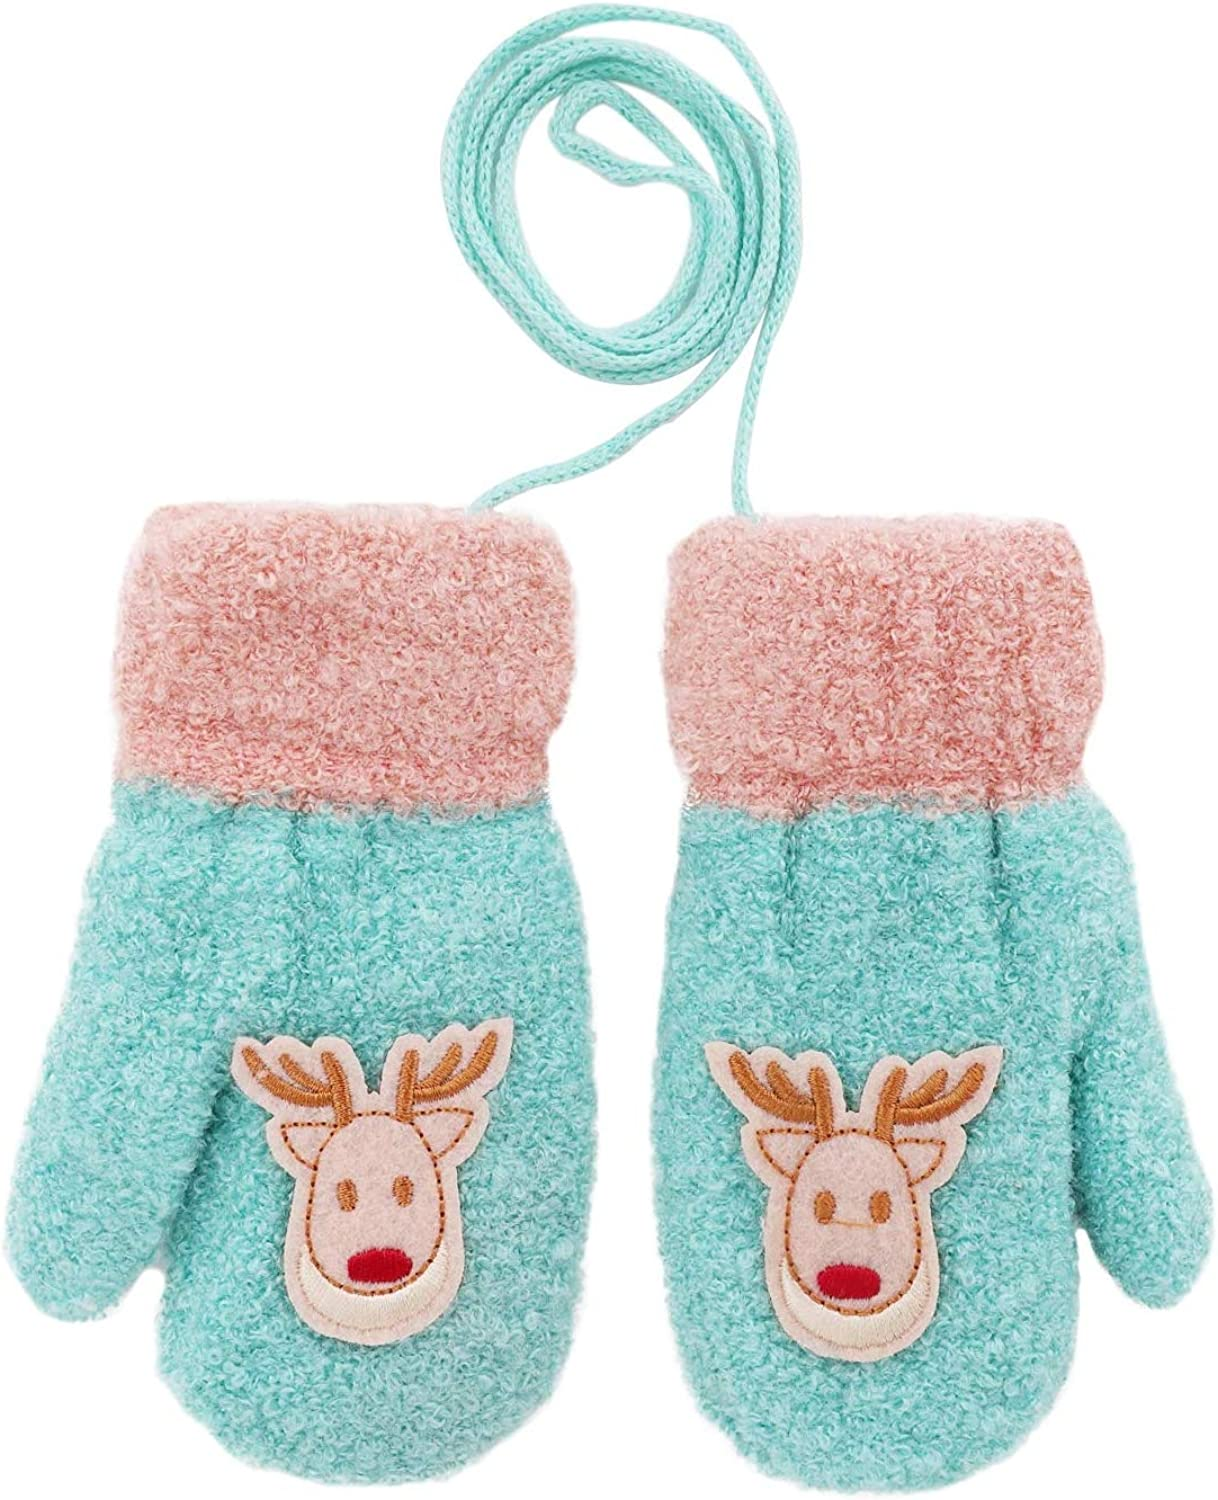 Baby Toddlers Warm Knitted Winter Challenge the lowest price of Japan ☆ String Free shipping New with Girls Gloves Boys